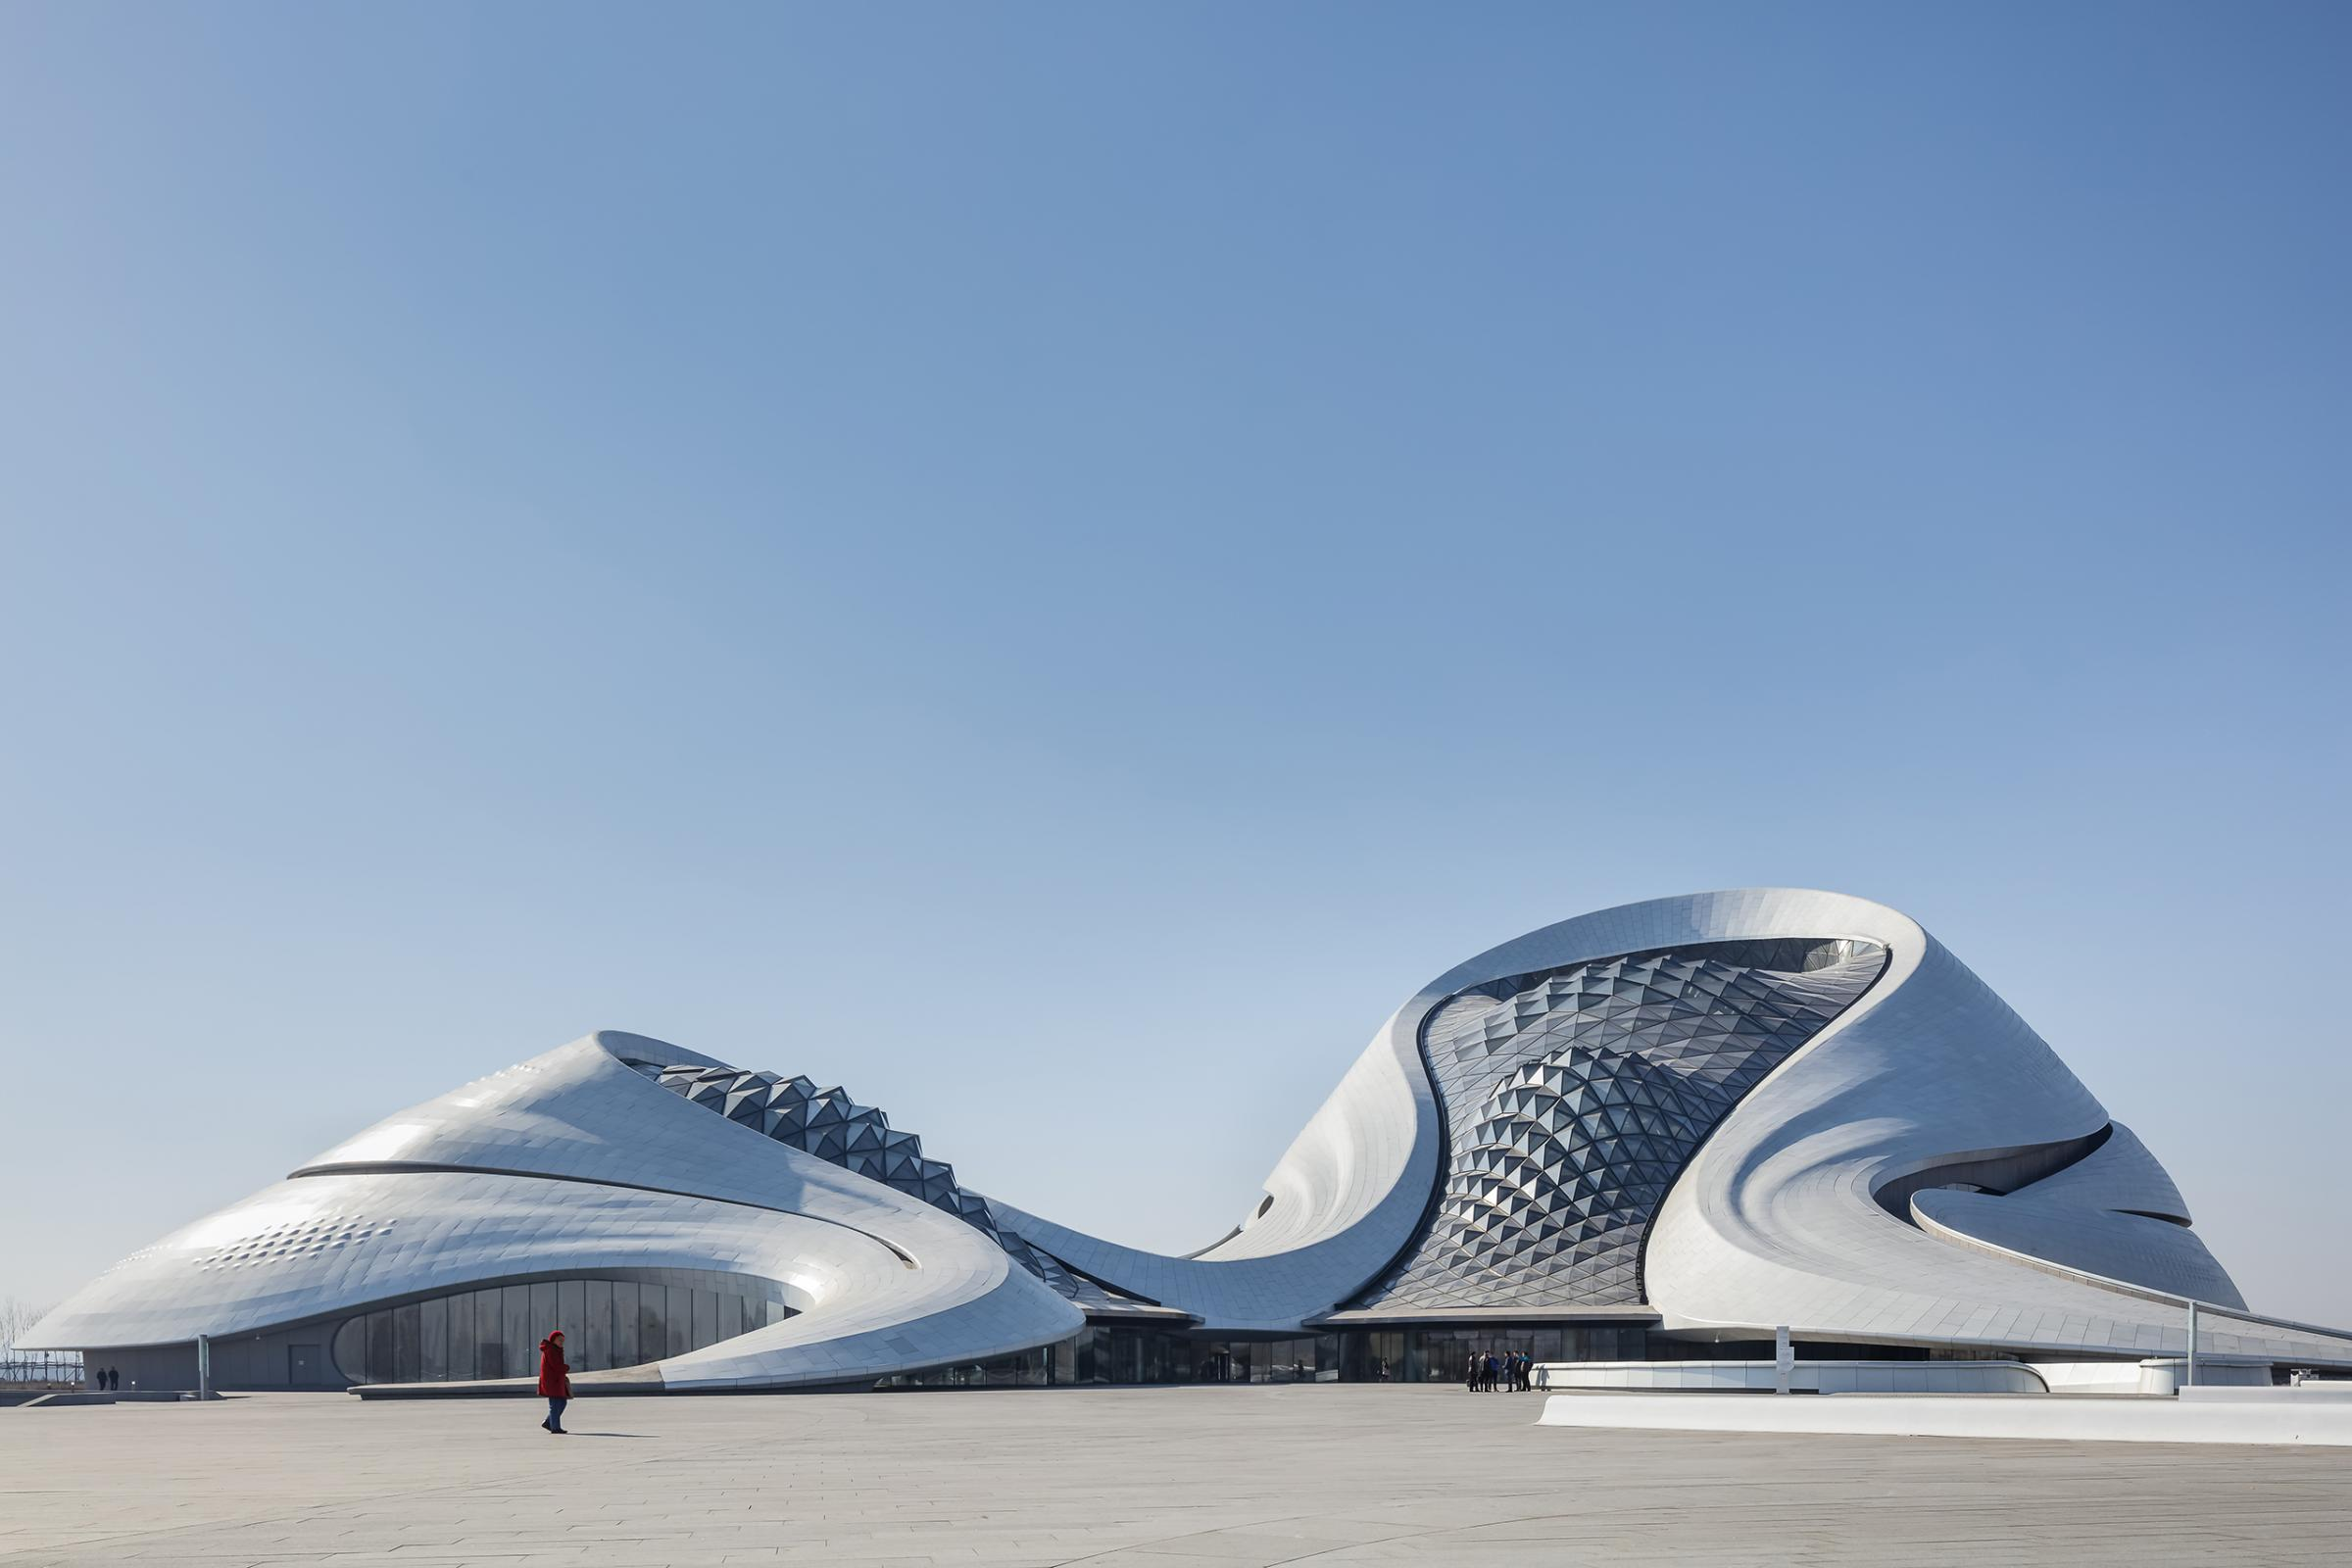 Photograph of Harbin Opera House, designed by MAD Architects and located in Harbin, China